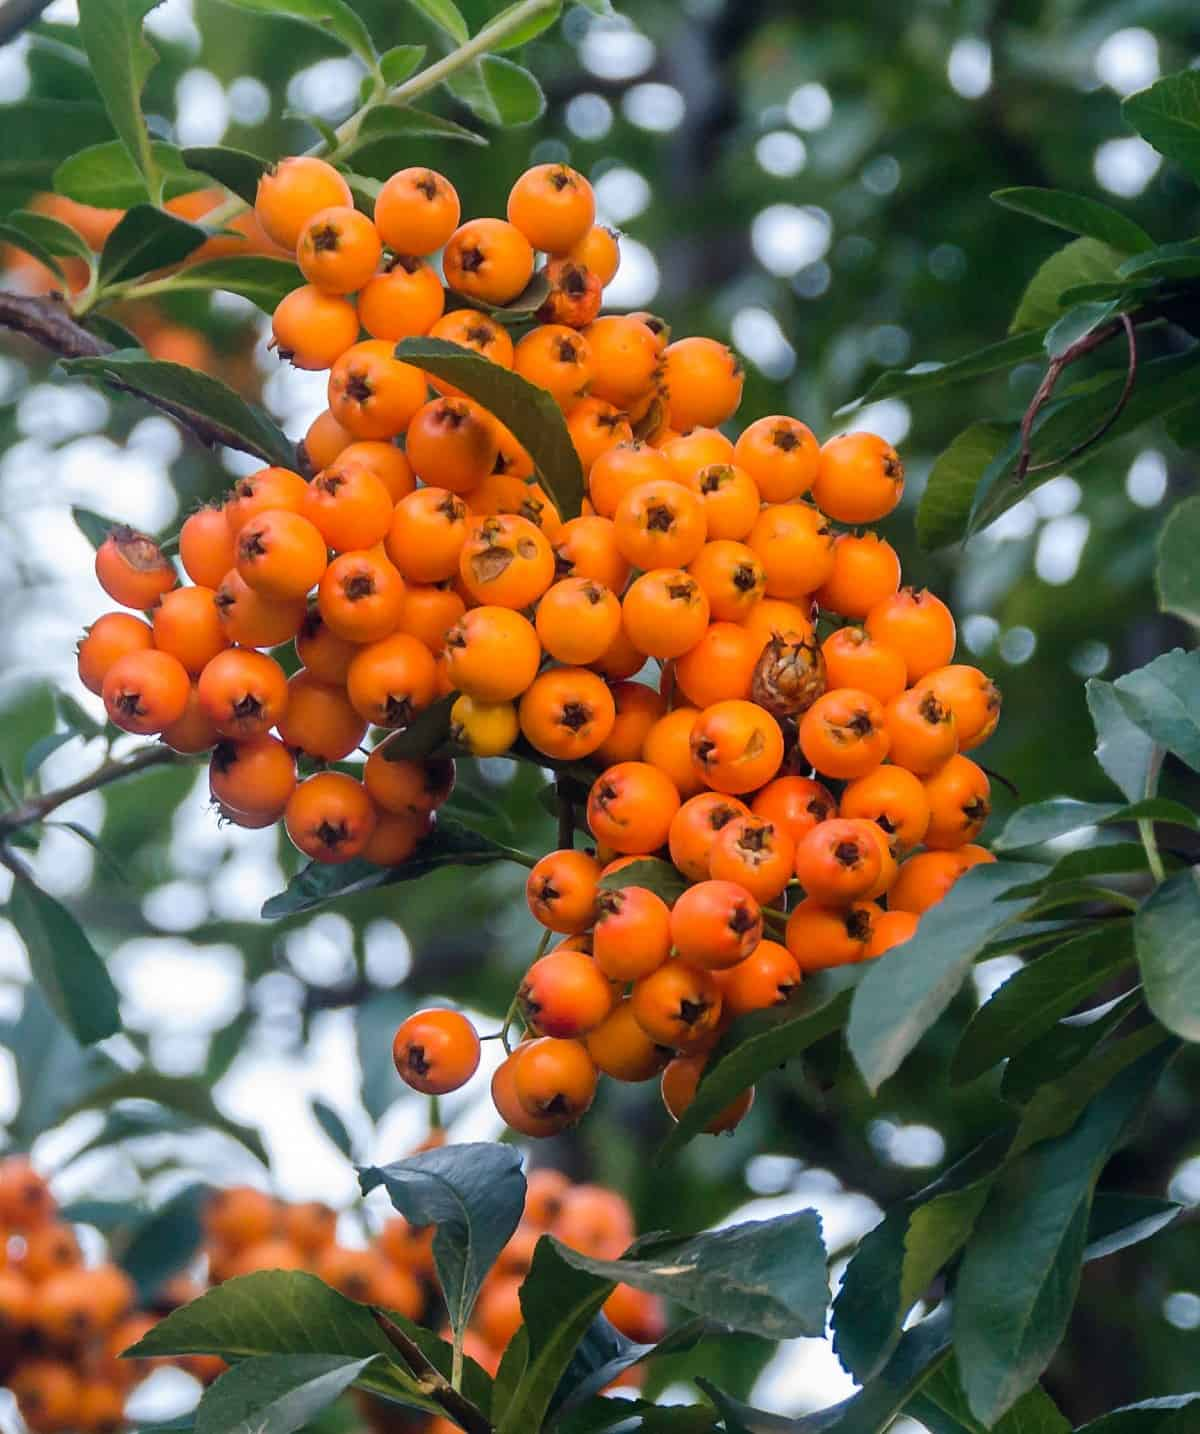 inkberry holly is a slow-growing evergreen